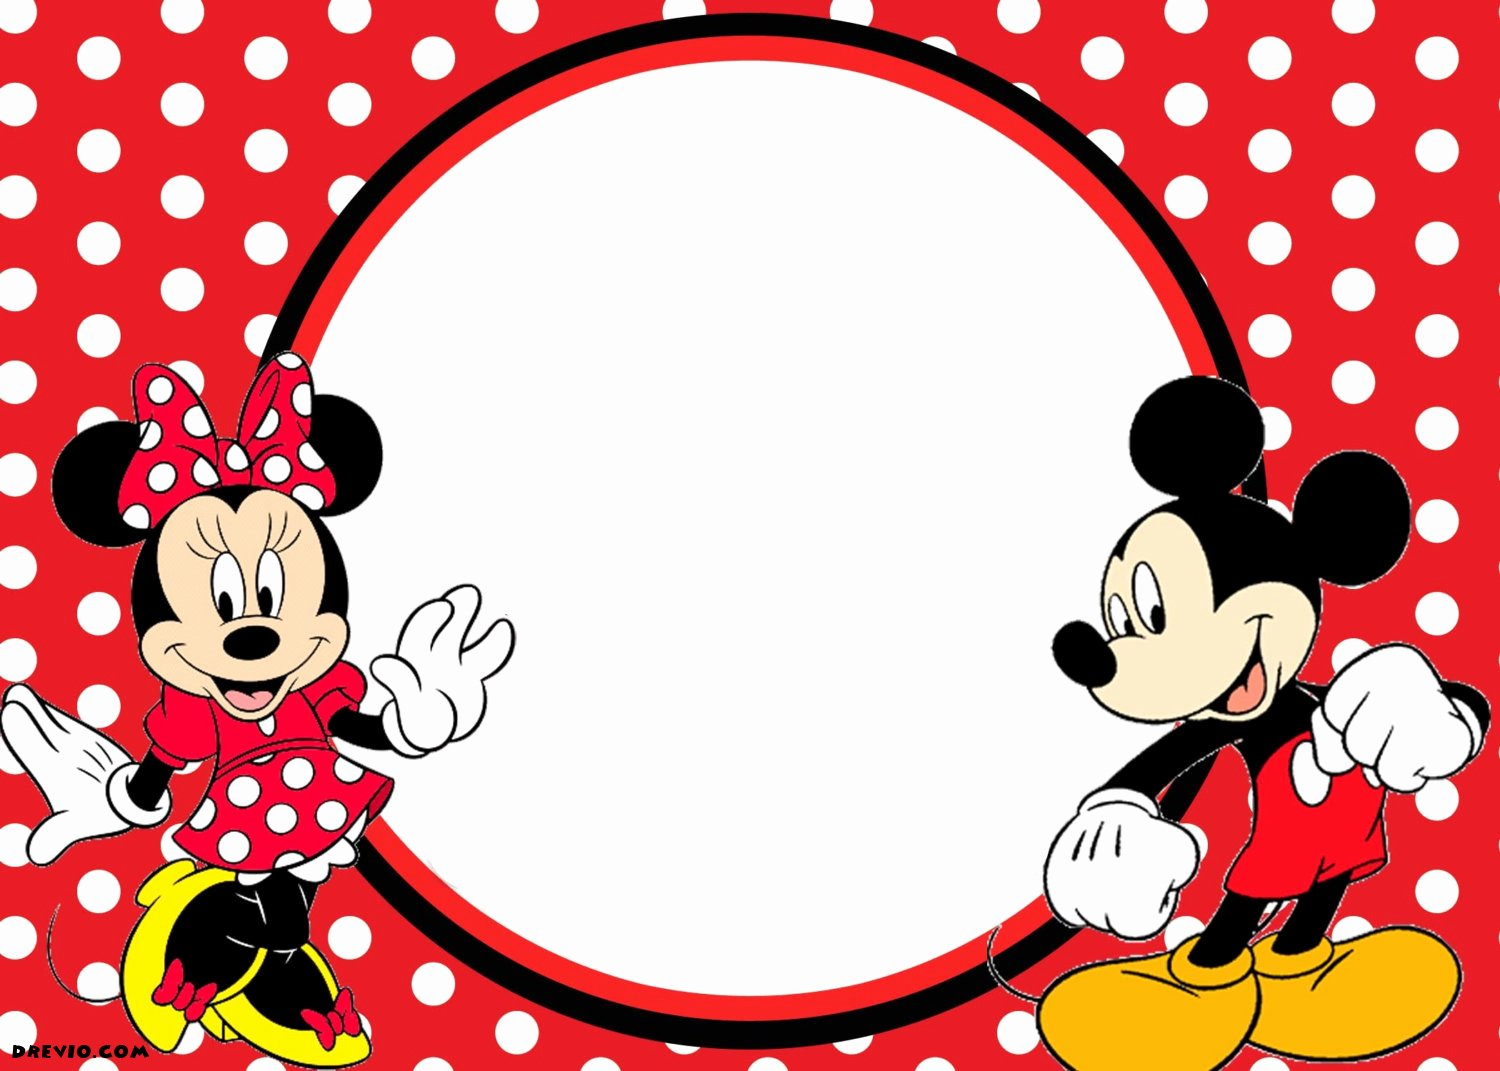 Mickey Mouse Invitations Template New Free Printable 1st Mickey and Minnie Invitation – Free Invitation Templates – Drevio